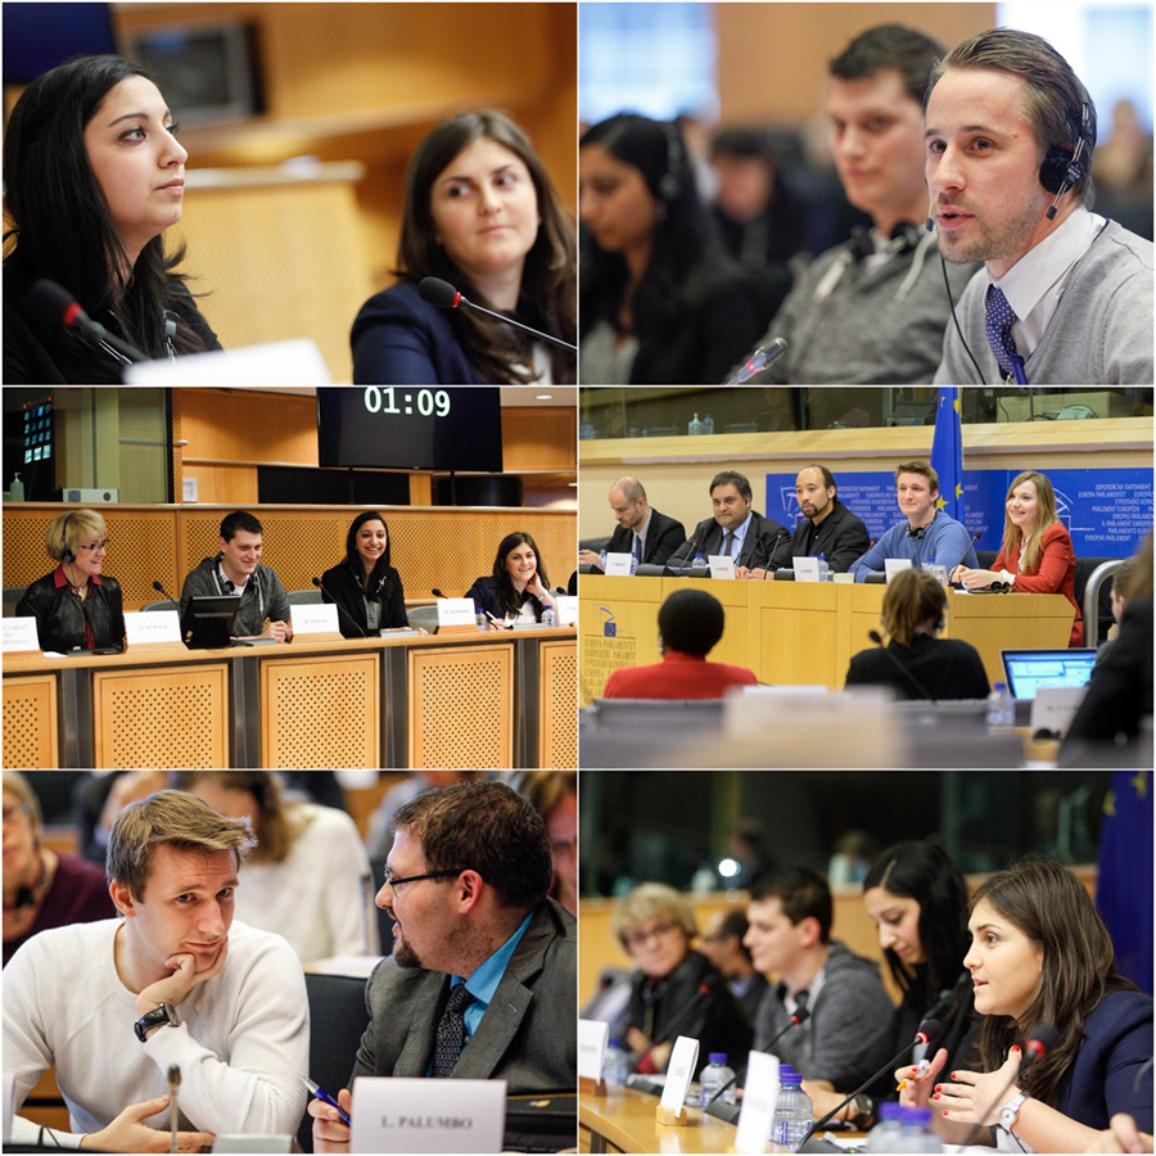 EYE hearings at the European Parliament in Brussels